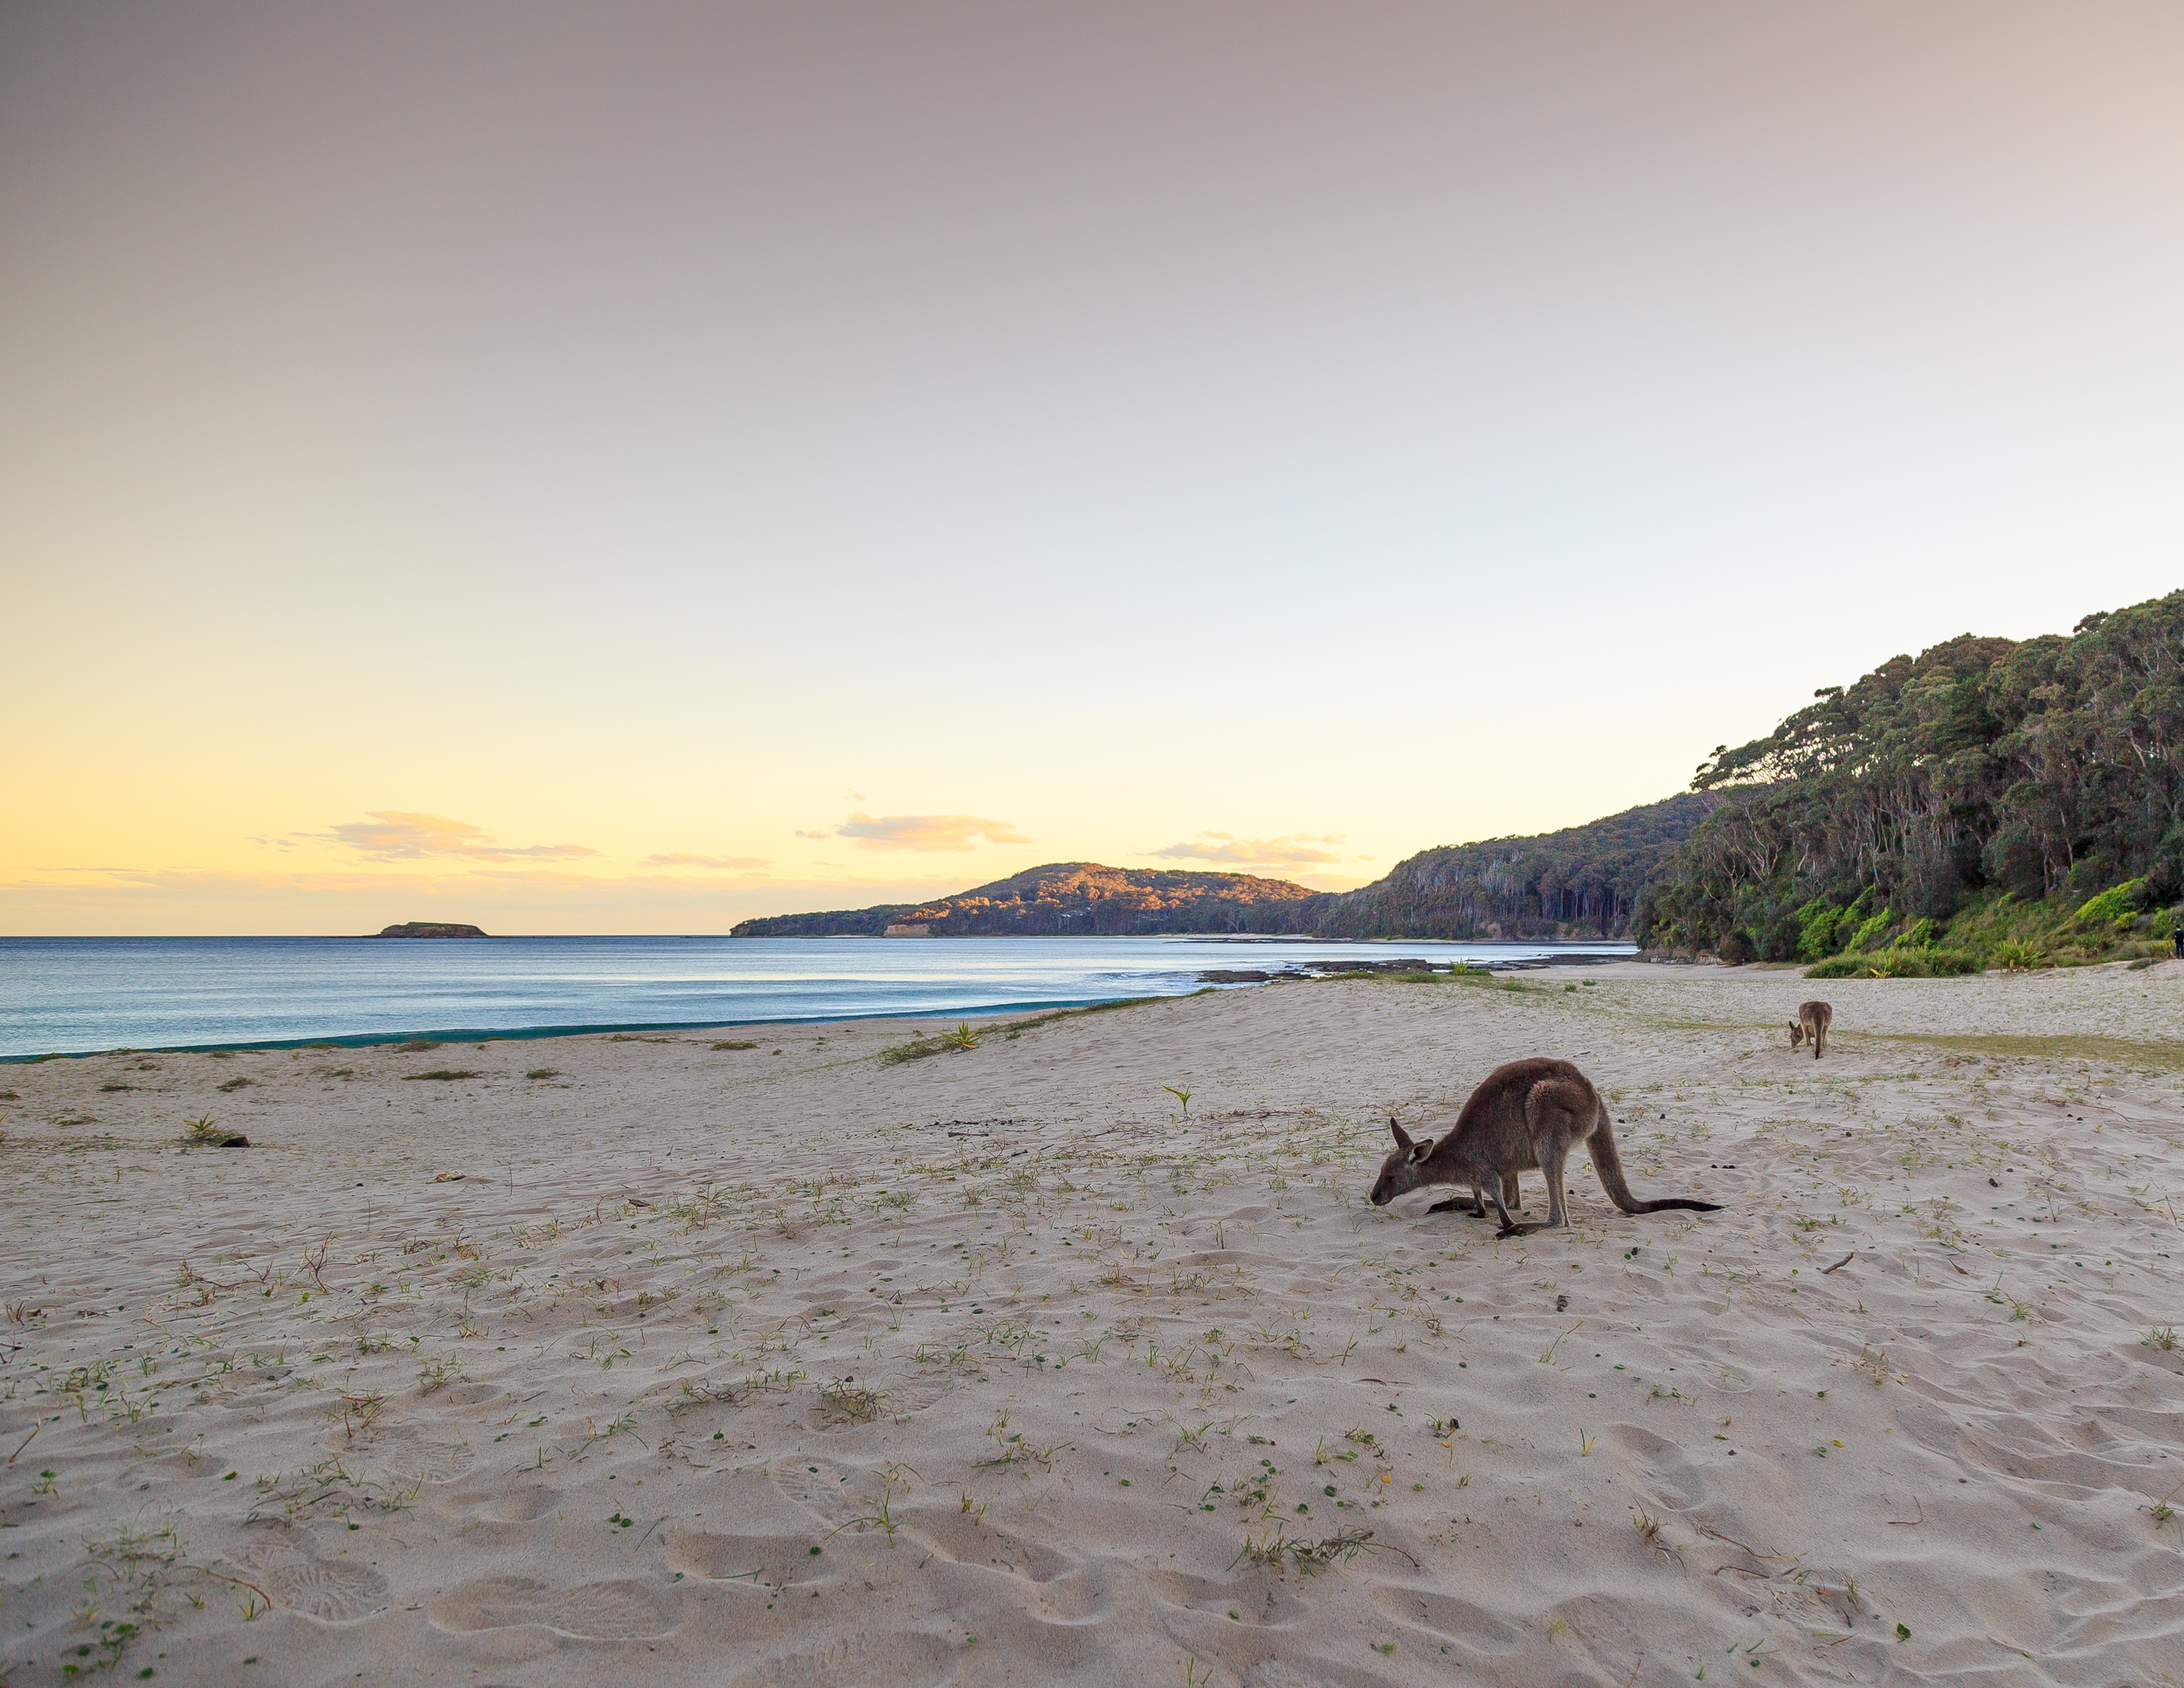 The beautiful kangaroos on the beach at Murramarang National Park in New South Wales. You can walk right up to them and they won't move.